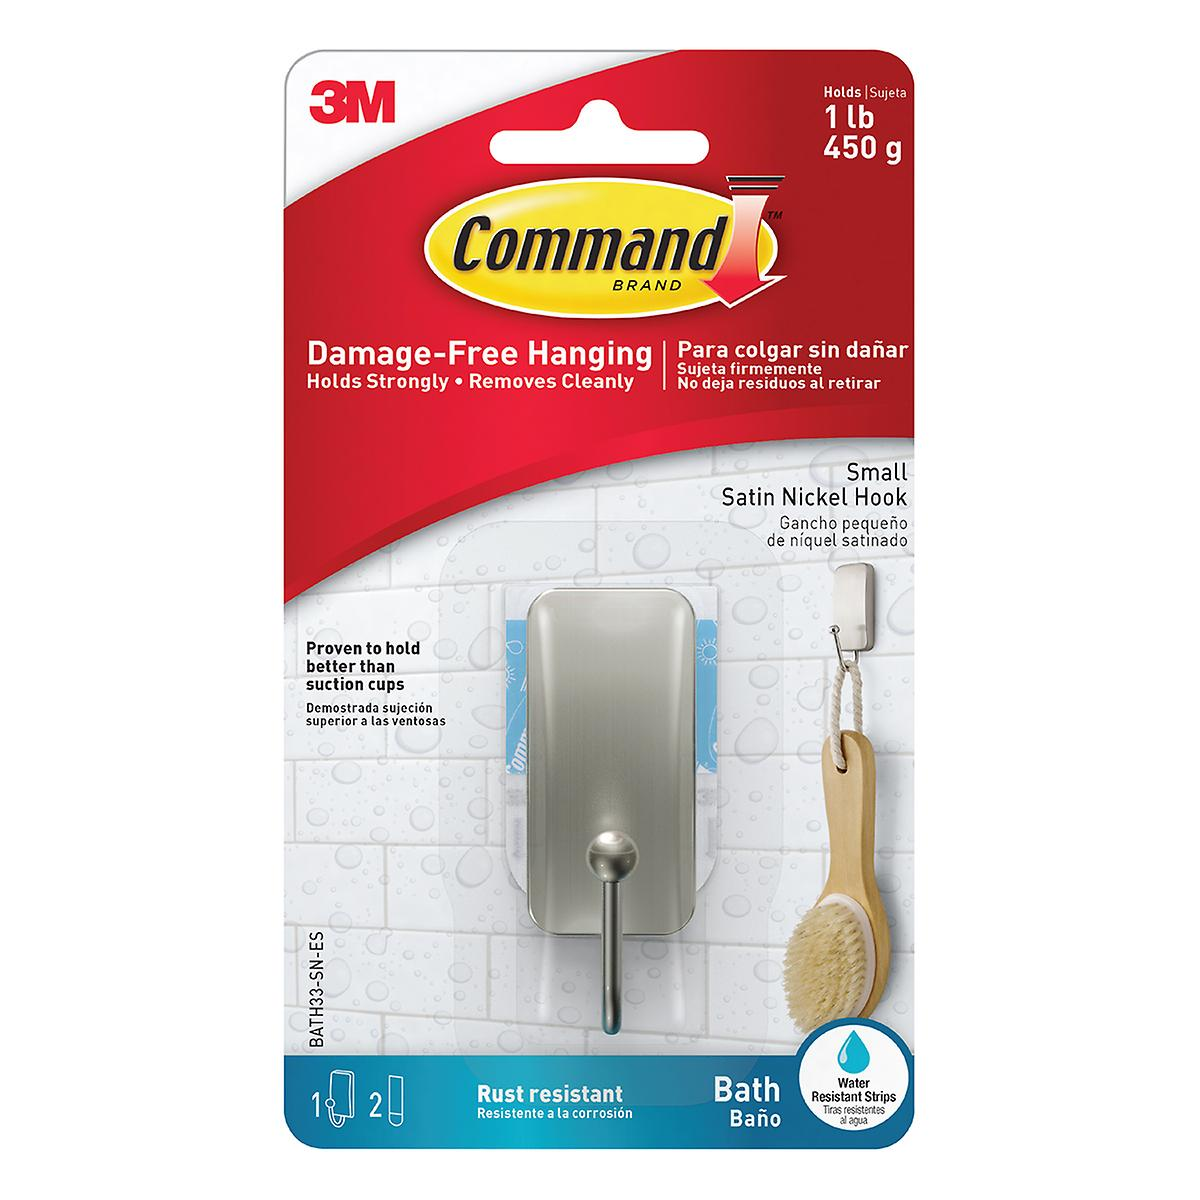 3M Command Small Satin Nickel Bath Hook